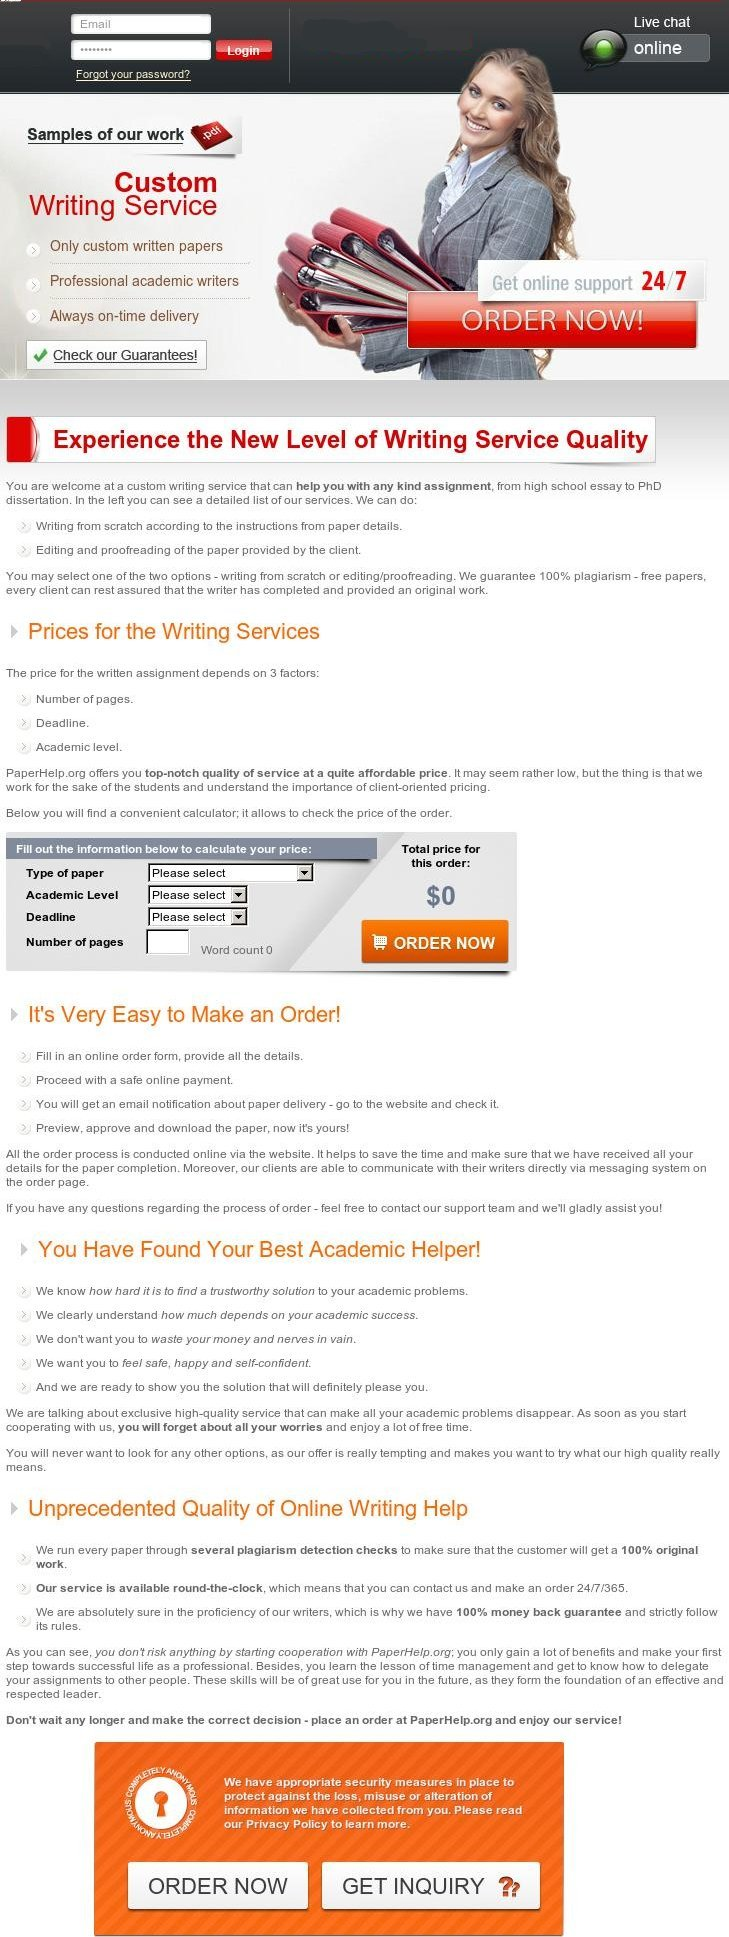 Write My Paper Co. Coupon Code | 20% OFF Coupons, Promo Codes January